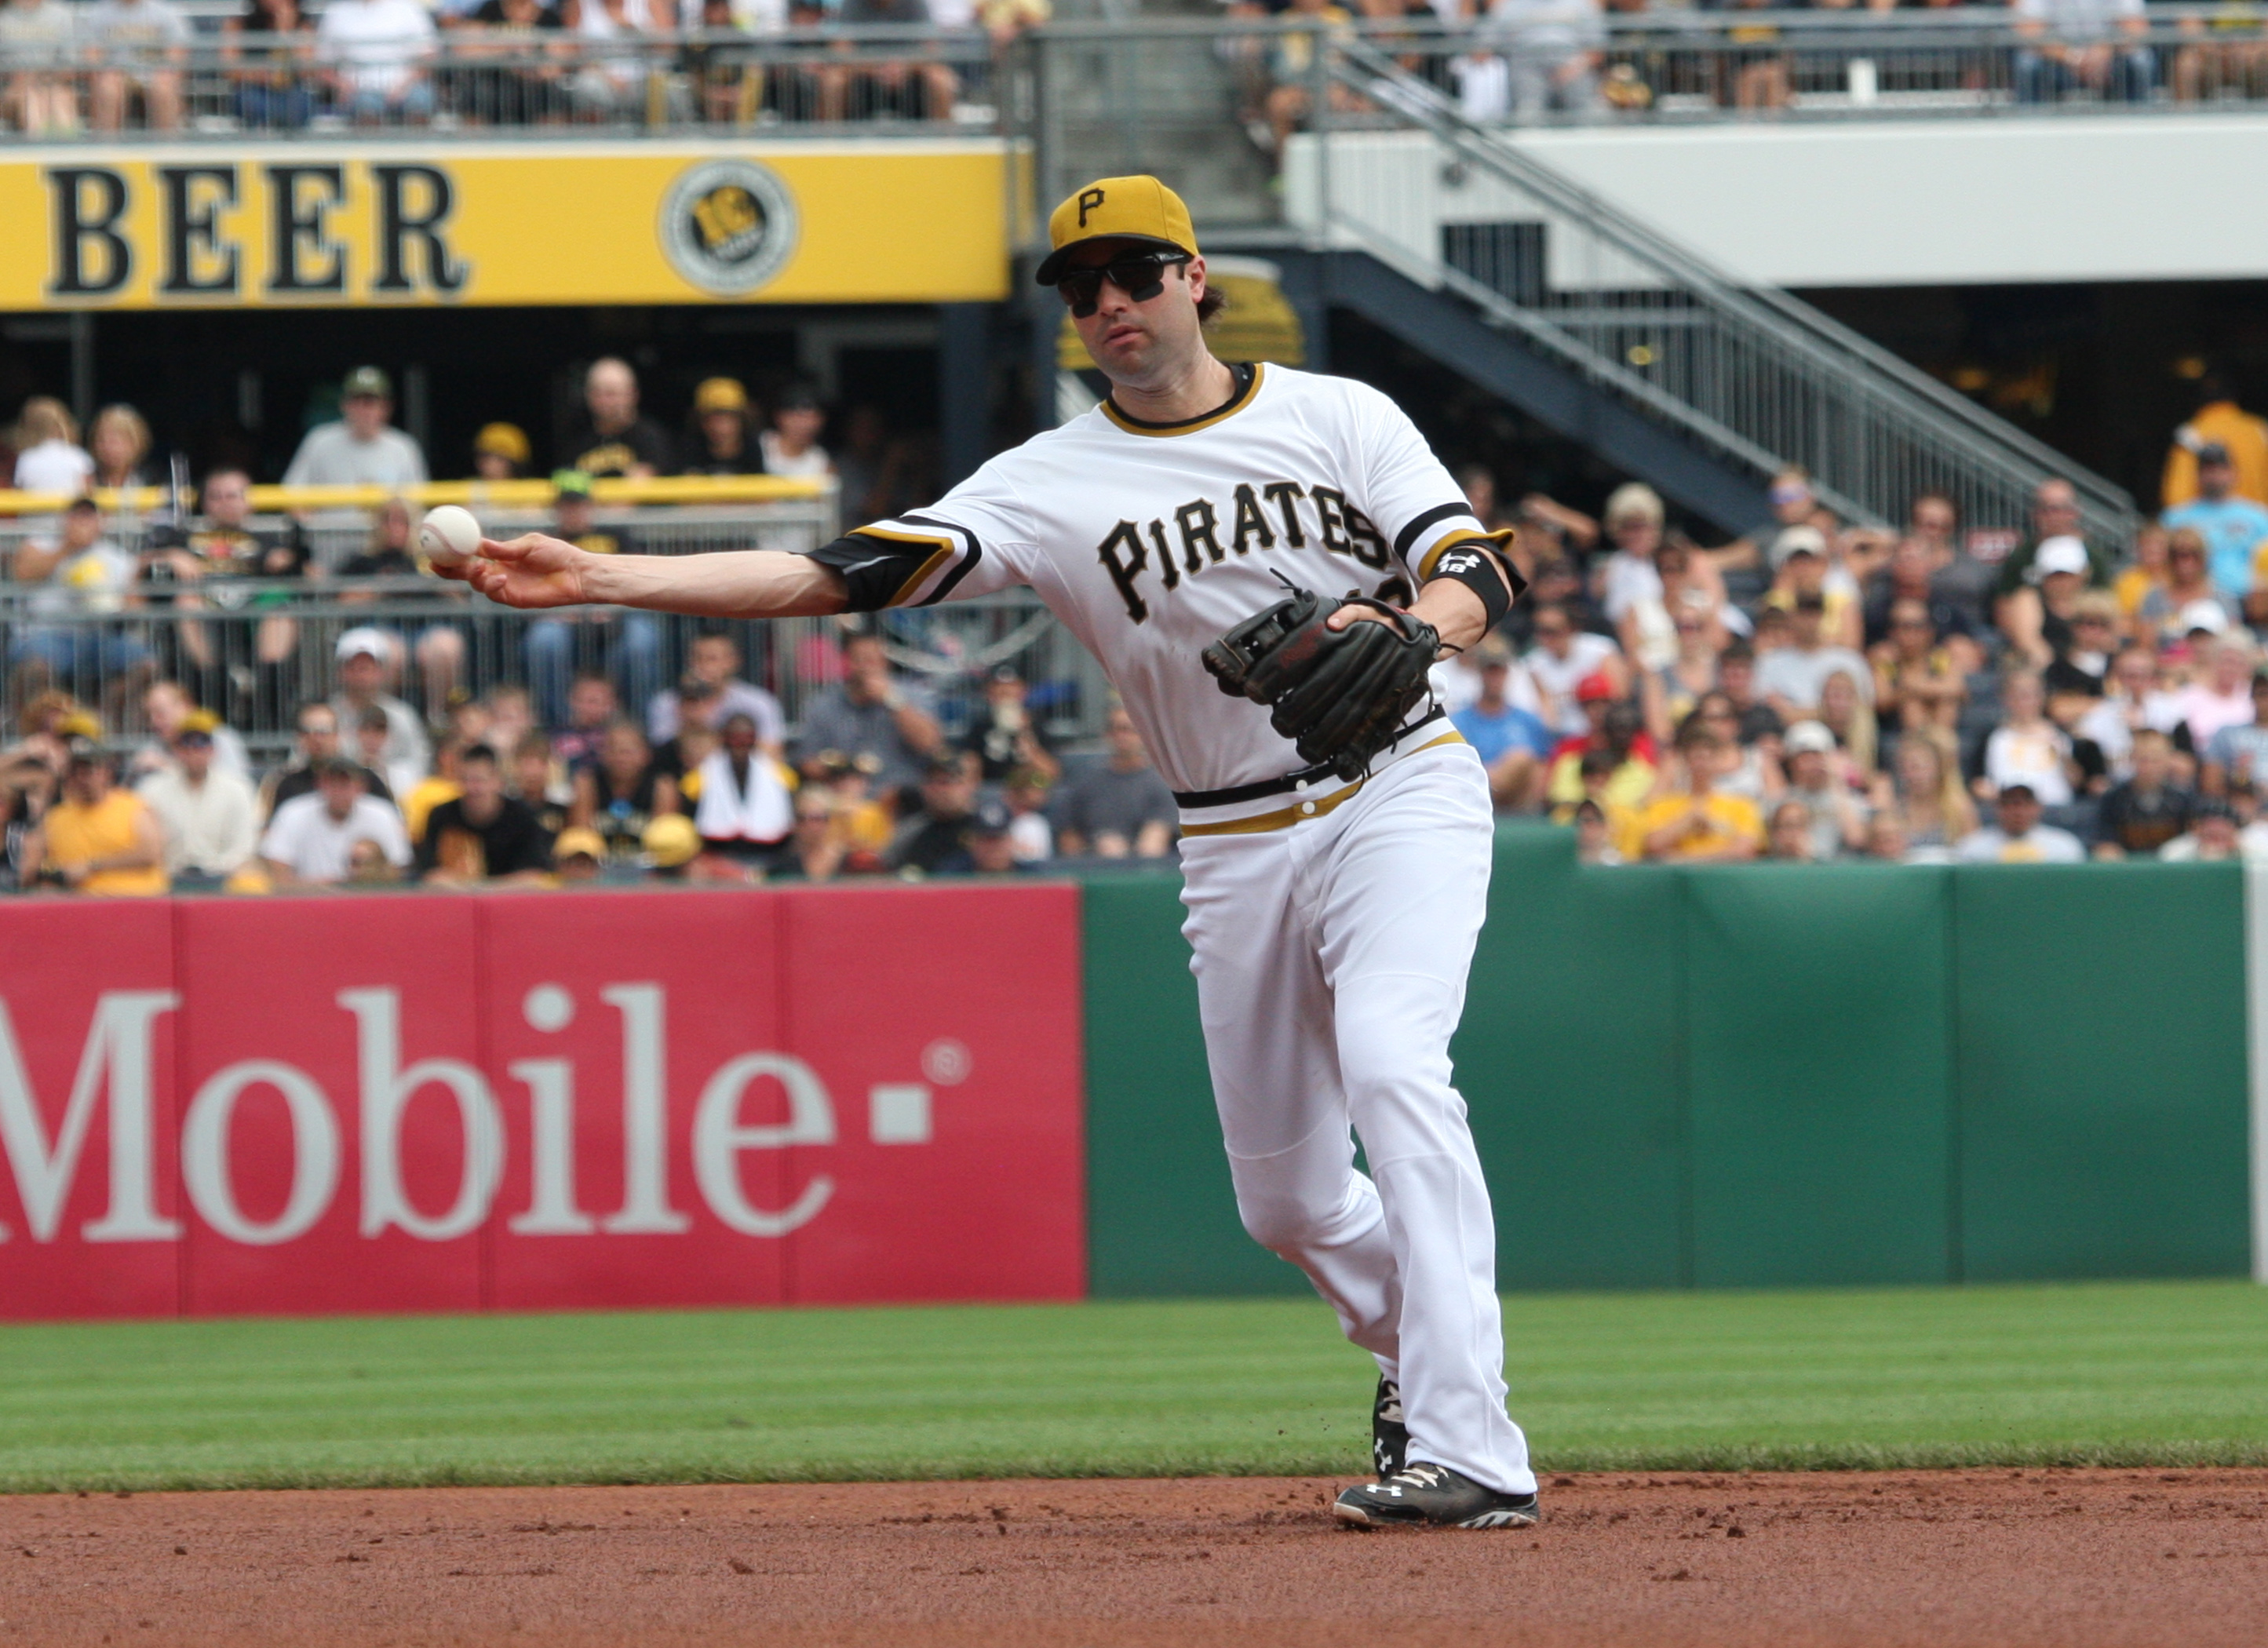 Buster Olney Ranks the Pirates Among the Best Defensive Teams